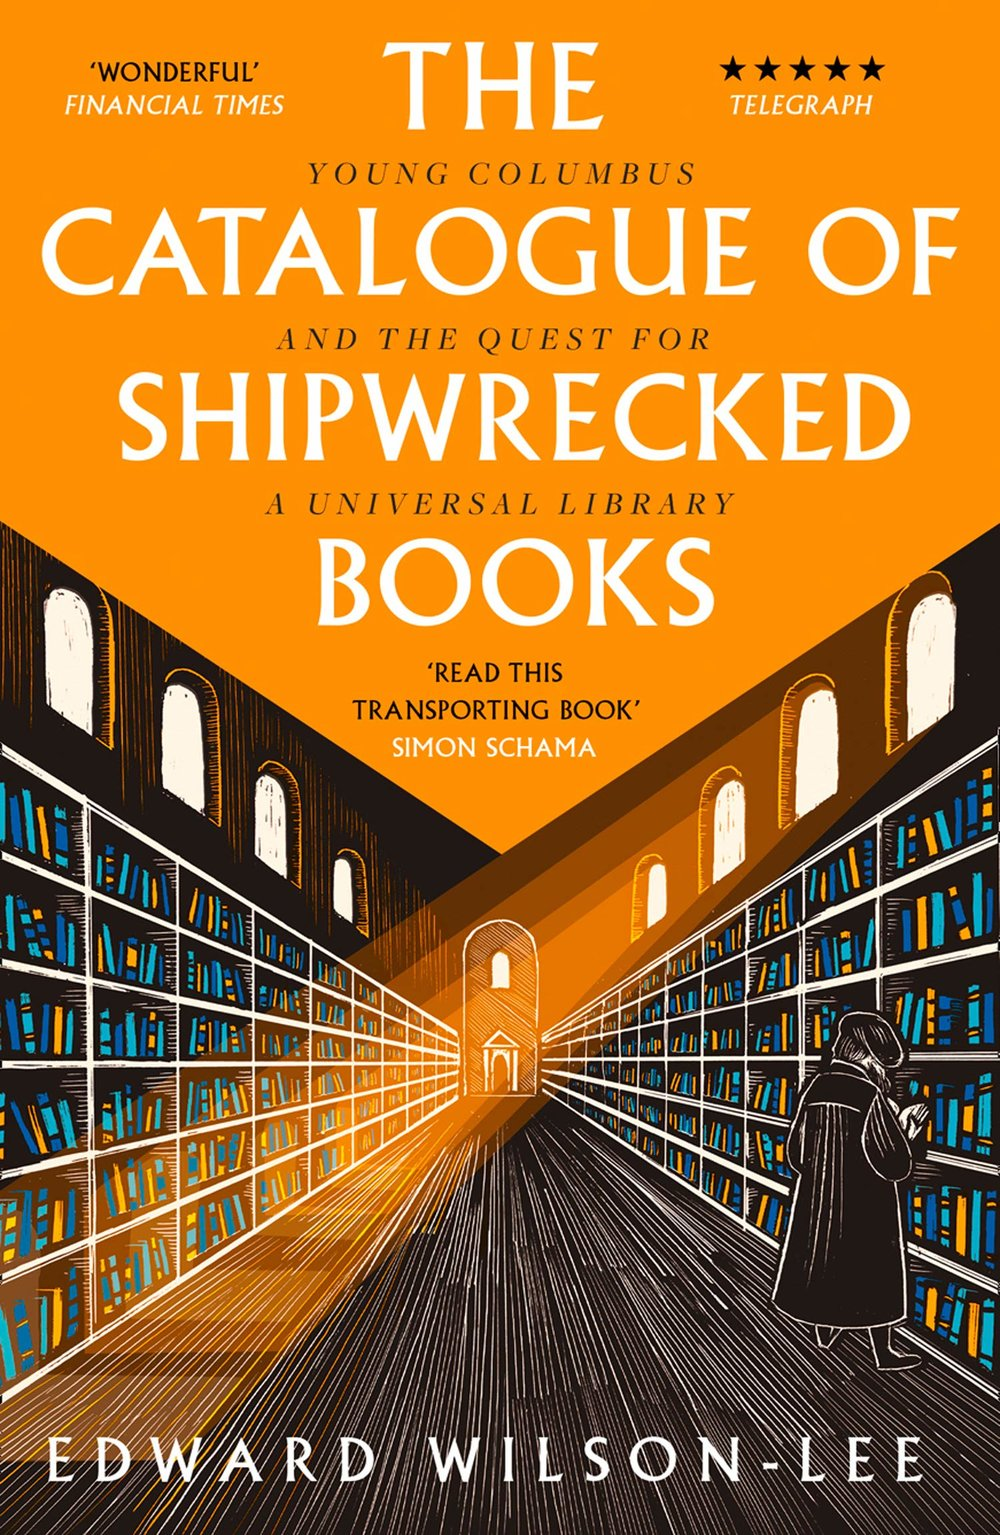 THE CATALOGUE OF SHIPWRECKED BOOKS  Biography, 416 pages HarperCollins, May 2018  This is the scarcely believable – and wholly true – story of Christopher Columbus' bastard son Hernando, who sought to equal and surpass his father's achievements by creating a universal library. His father sailed across the ocean to explore the known boundaries of the world for the glory of God, Spain and himself. His son Hernando sought instead to harness the vast powers of the new printing presses to assemble the world's knowledge in one place, his library in Seville.